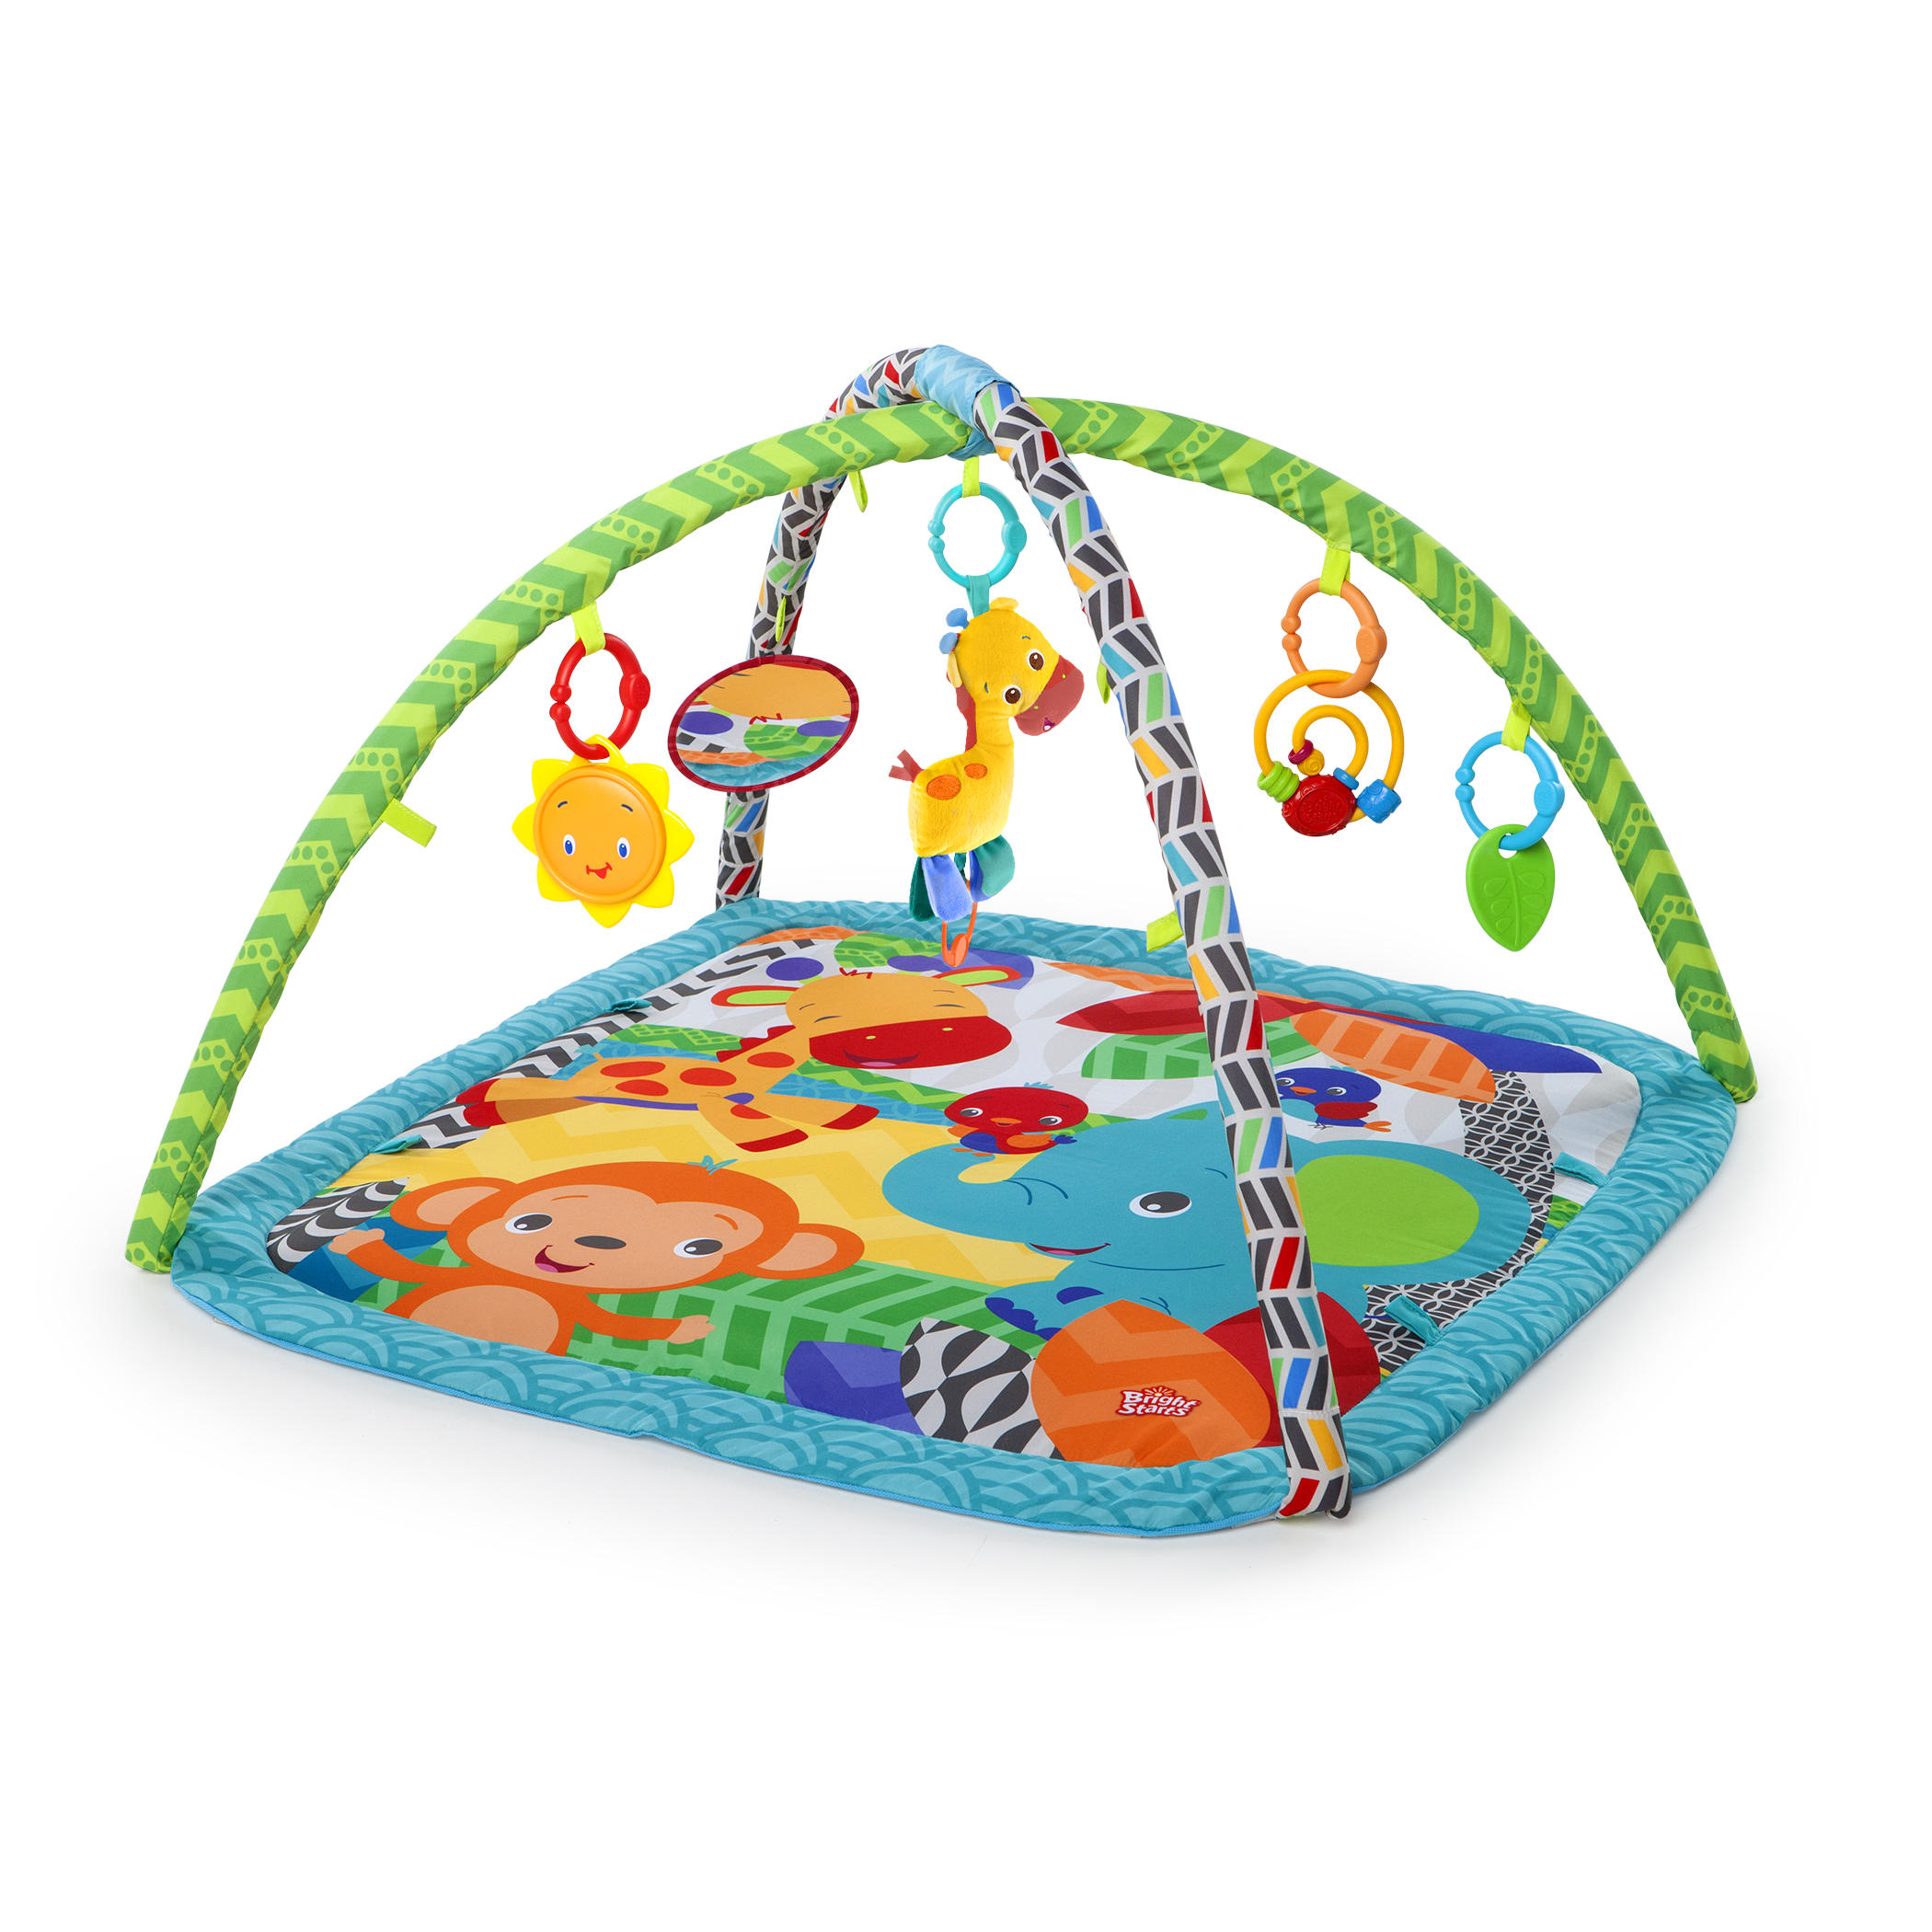 Bright Starts Zippy Zoo Activity Gym